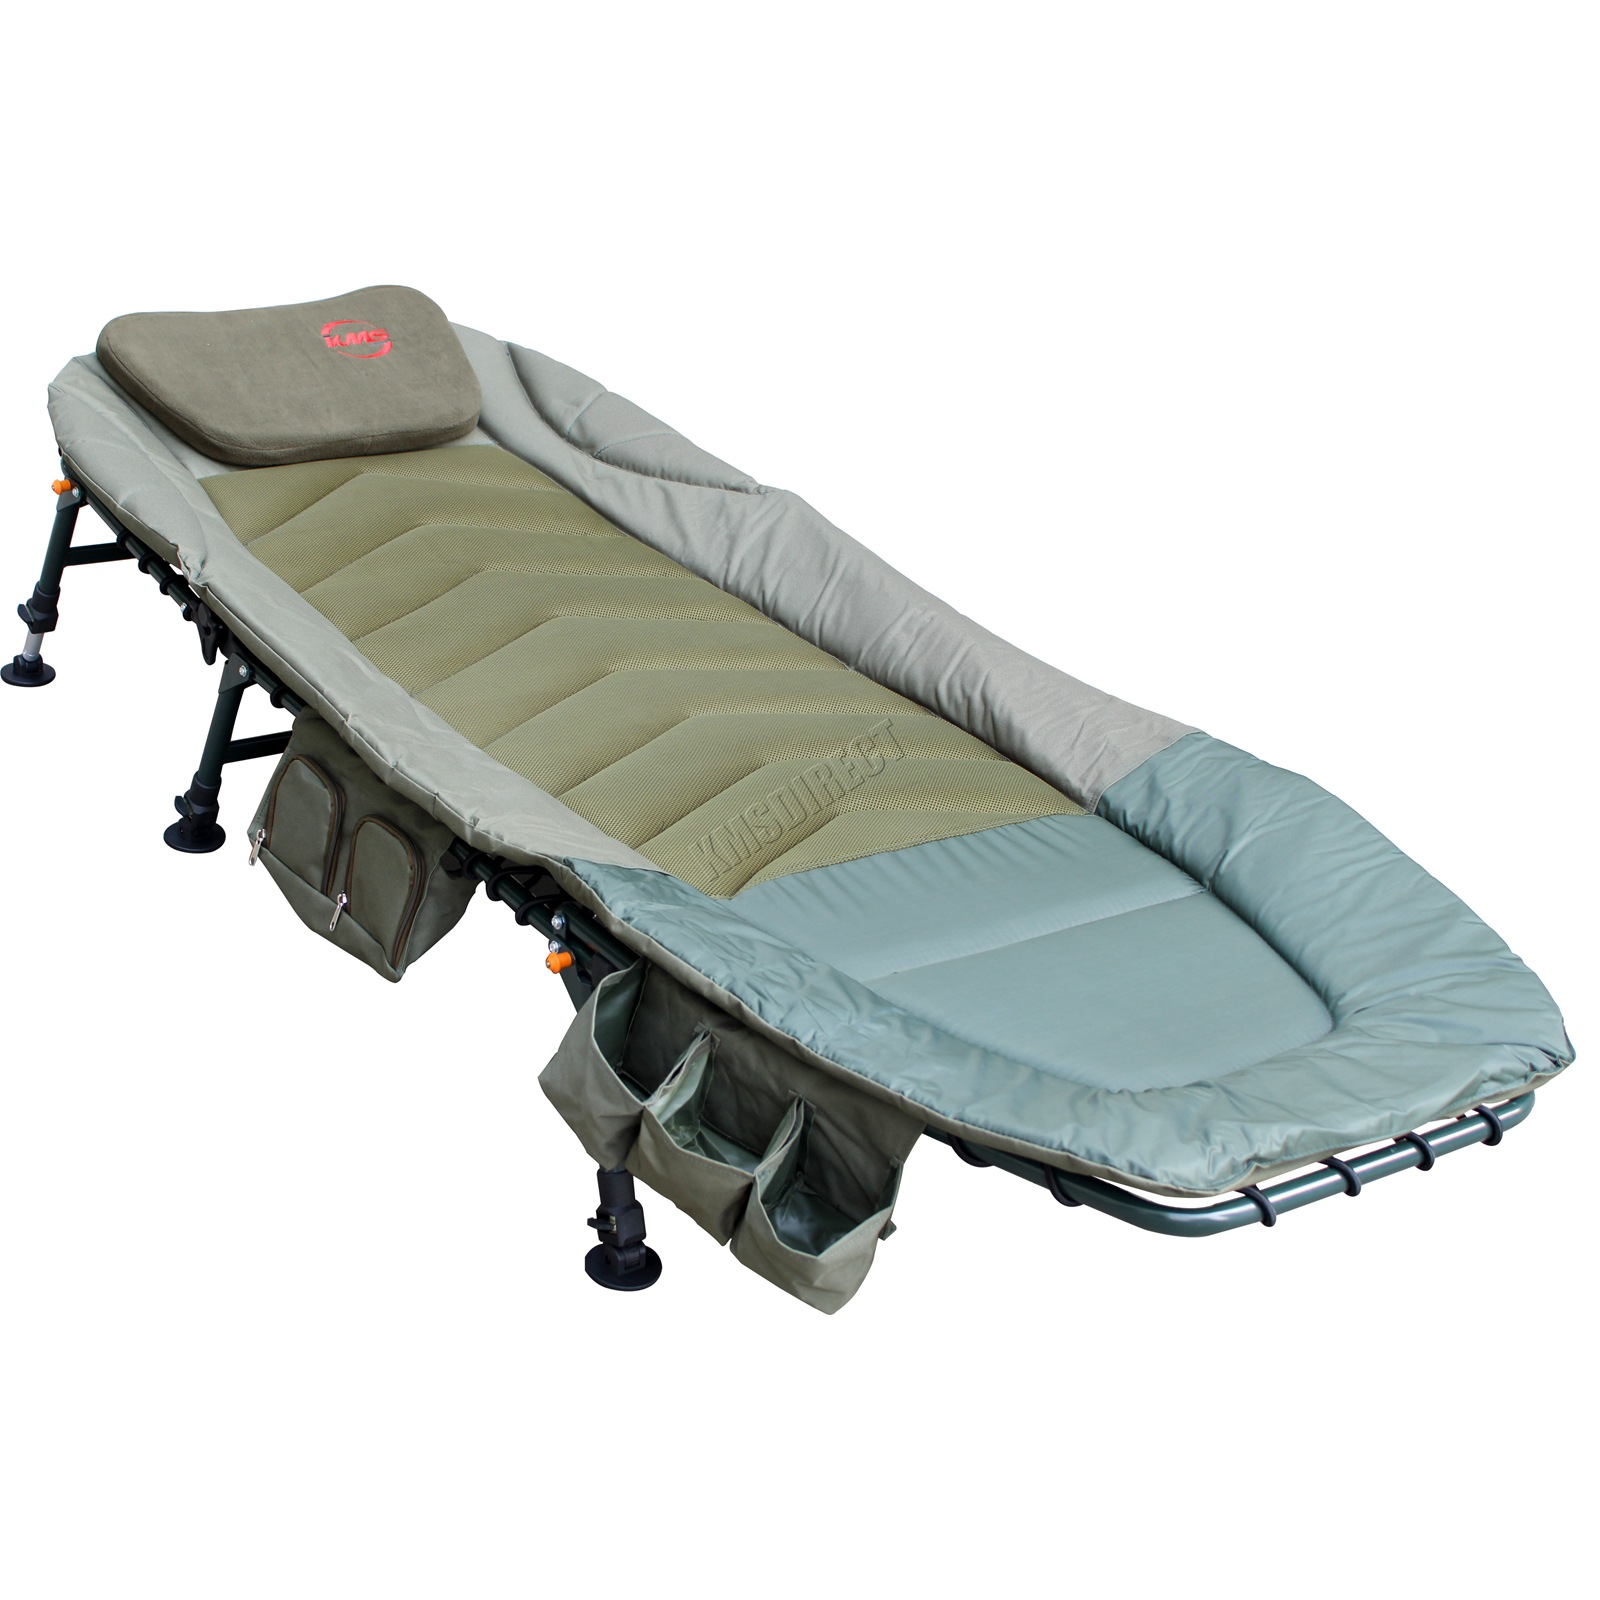 Fishing bed chair bedchair camping 6 adjustable legs tool bag pillow